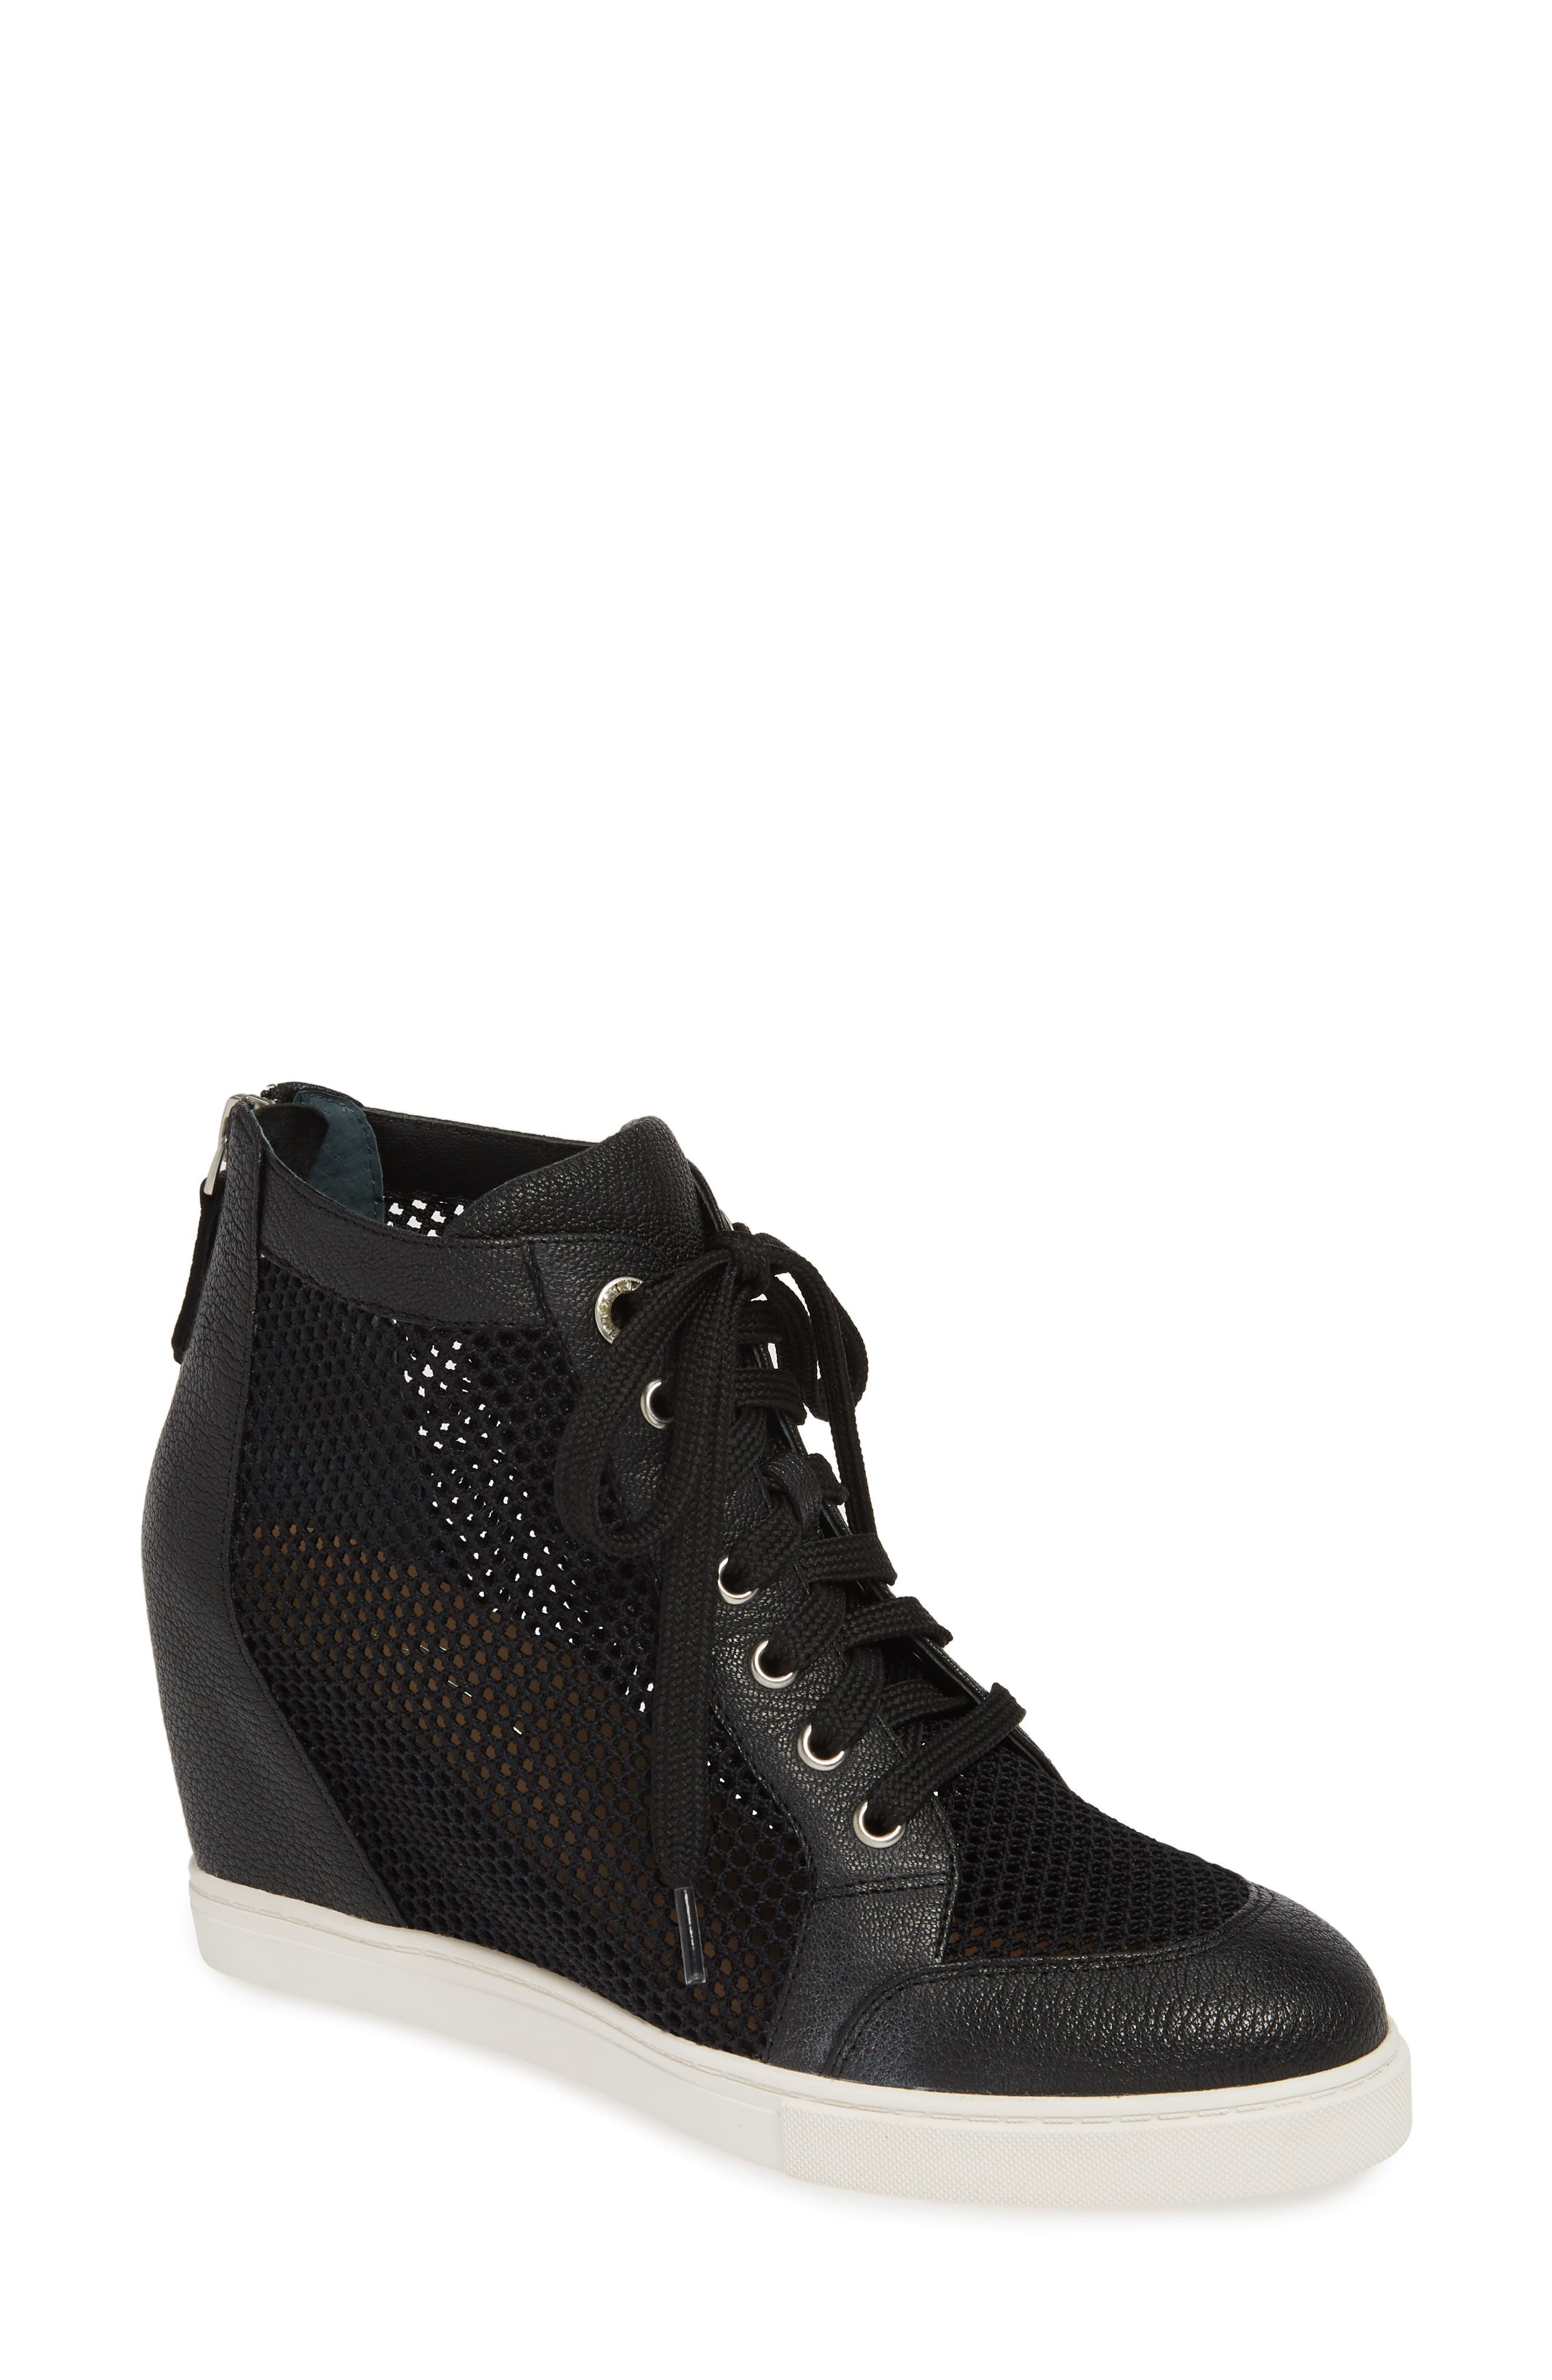 LINEA PAOLO Finian Mesh Wedge Sneaker Bootie, Main, color, BLACK LEATHER